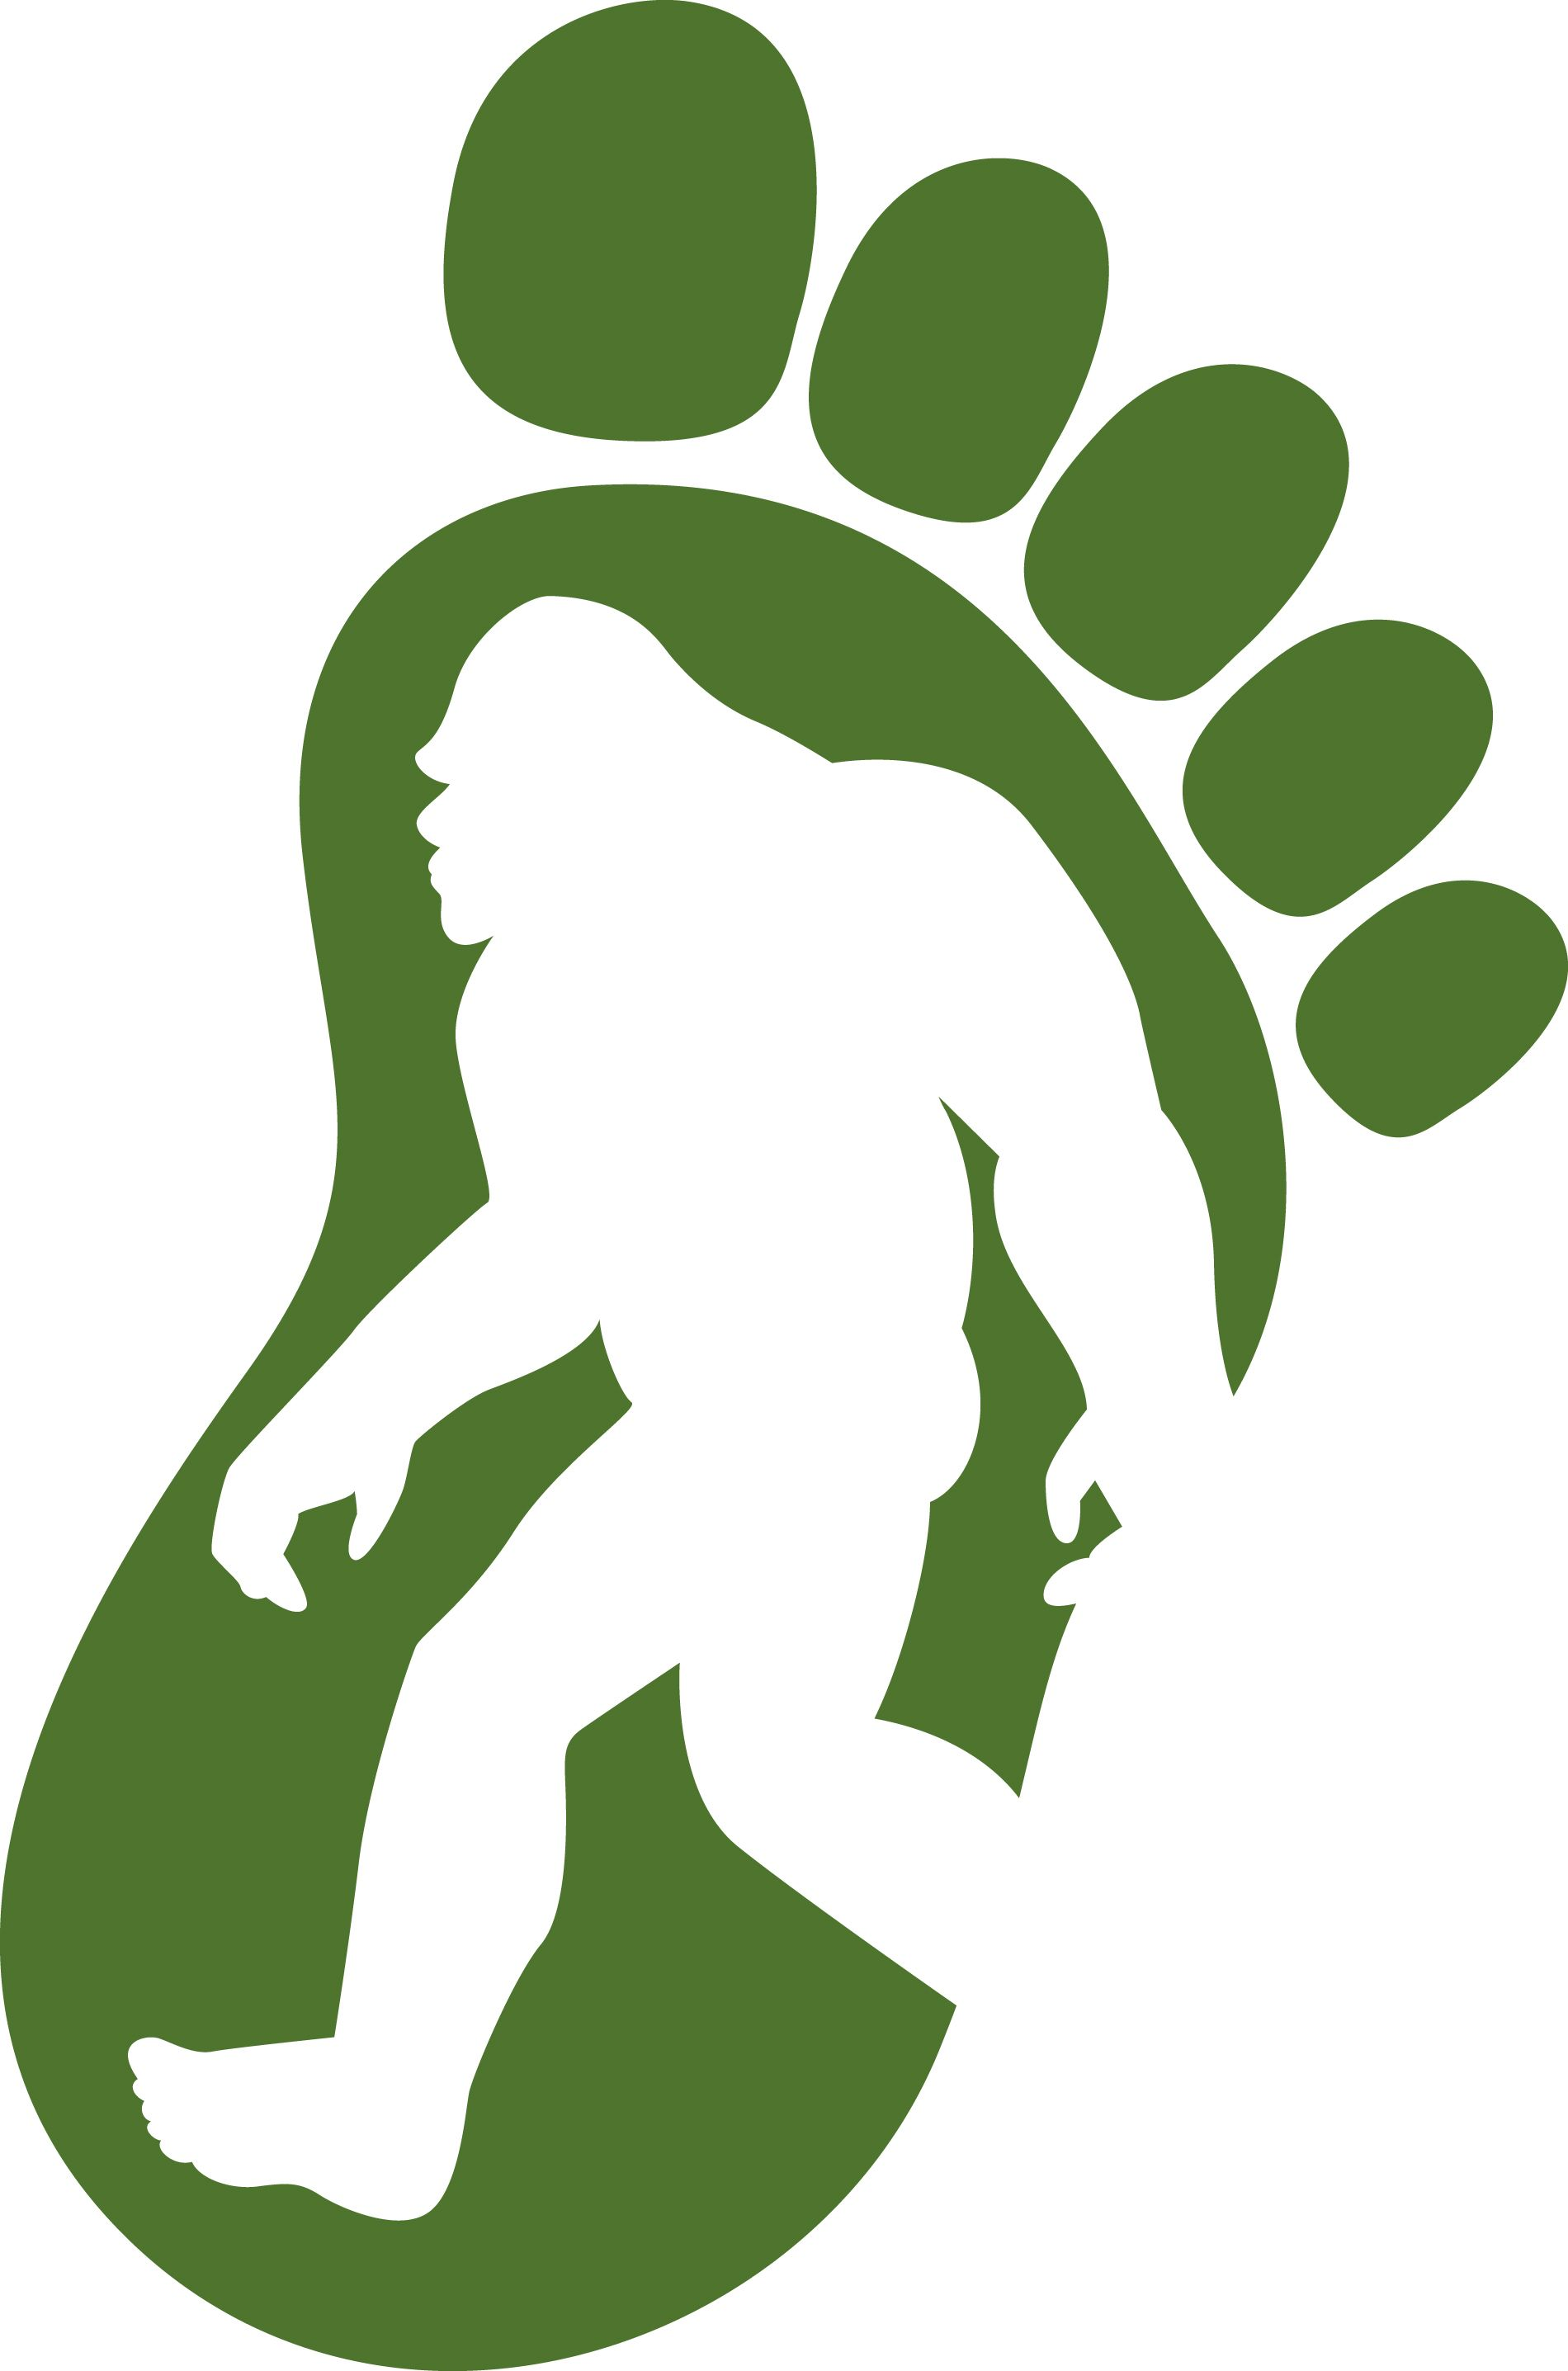 Bigfoot clipart yeti. Digital scrapbooking sasquatch google